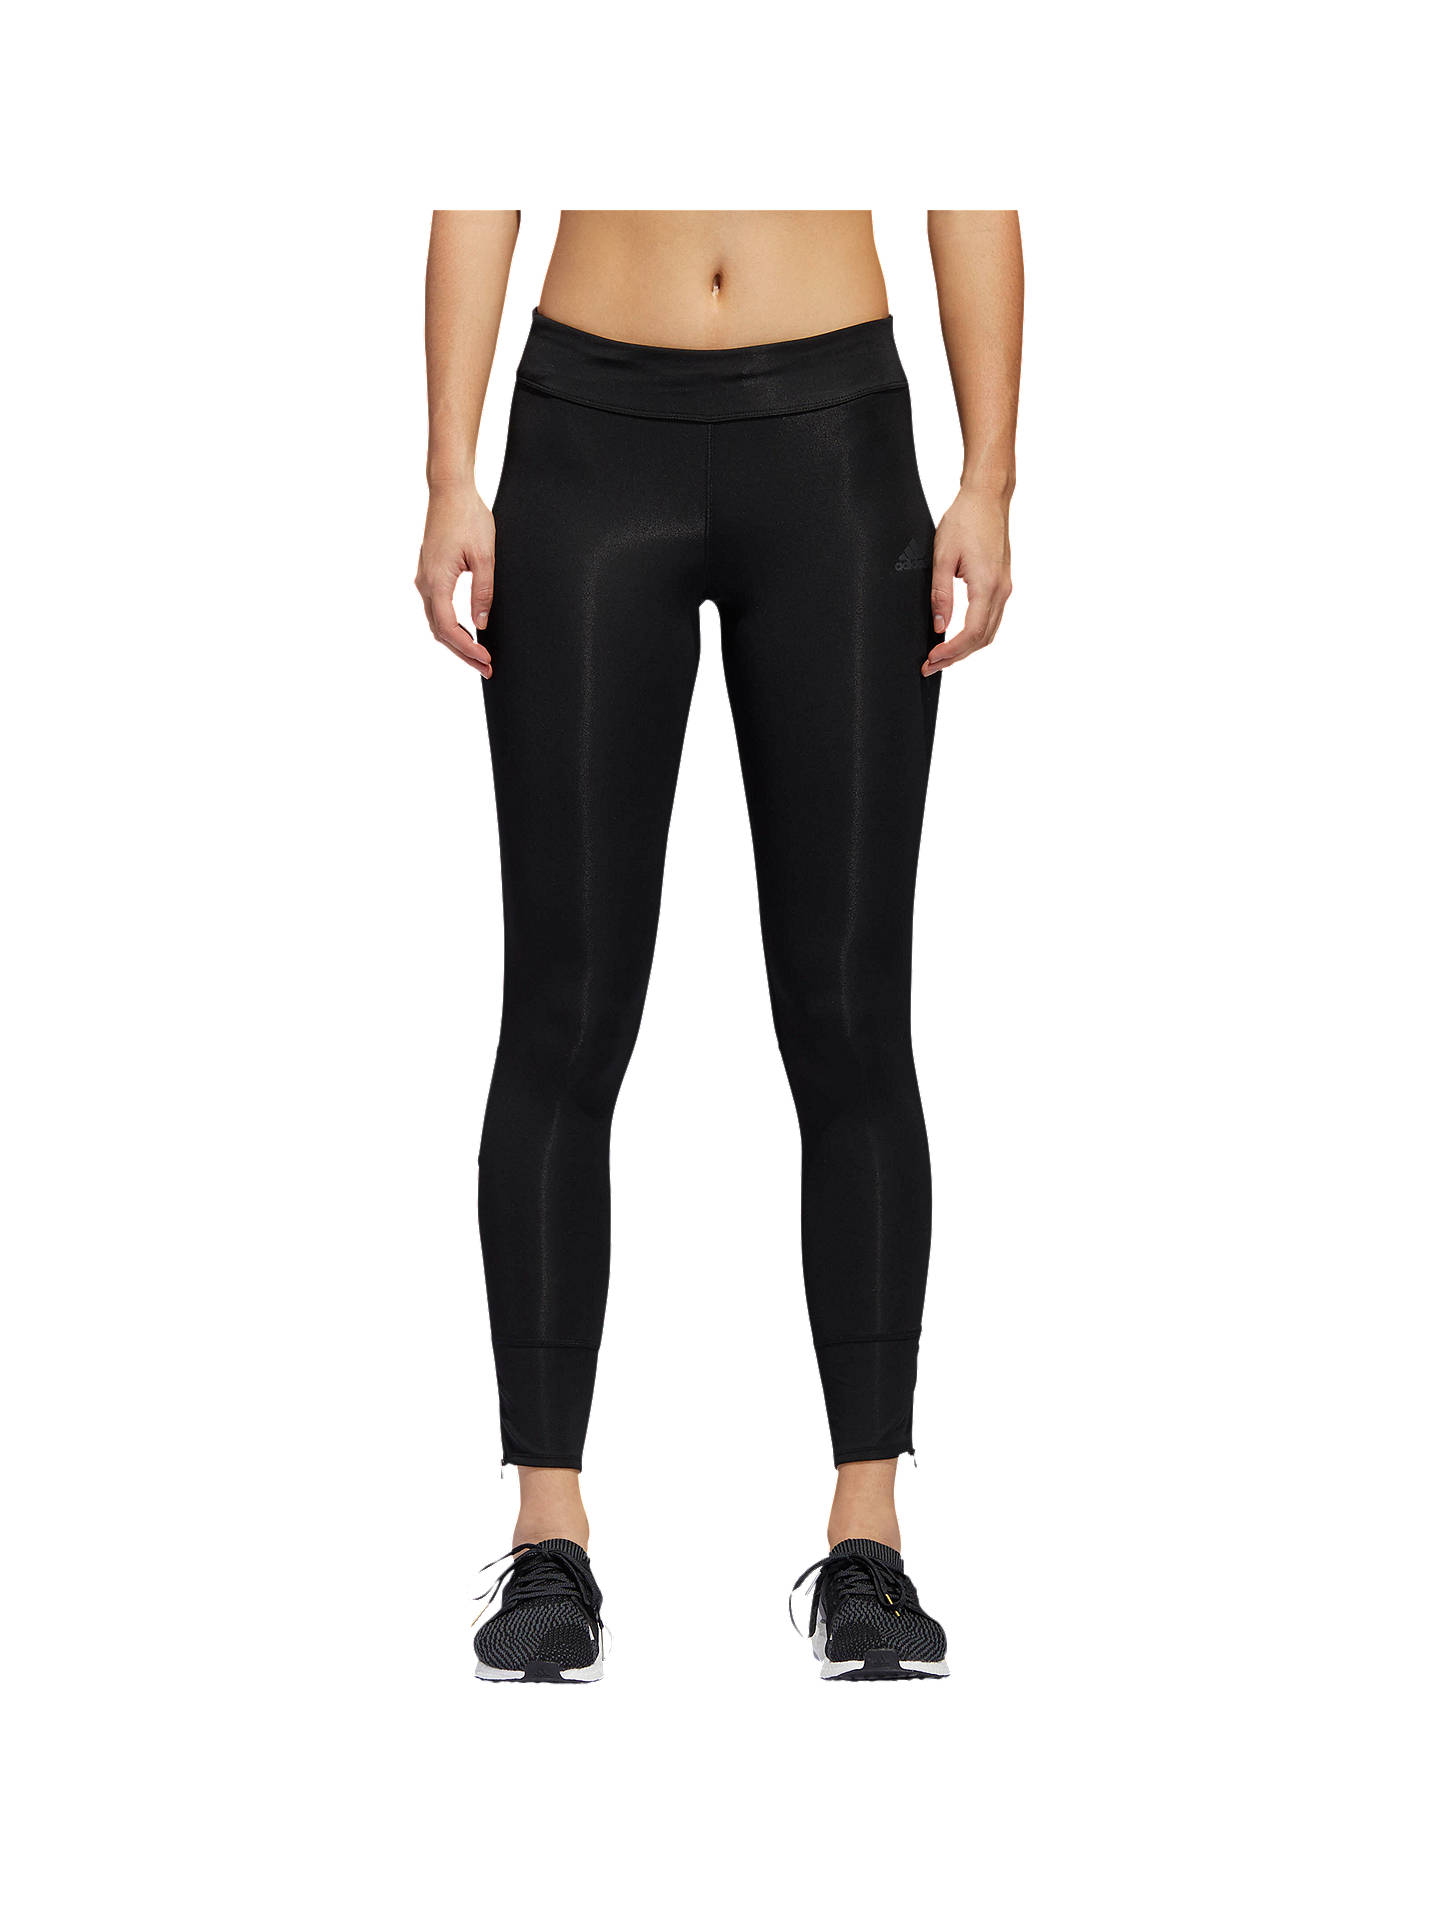 410de3f264b Buy adidas Response Long Running Tights, Black, XS Online at johnlewis.com  ...